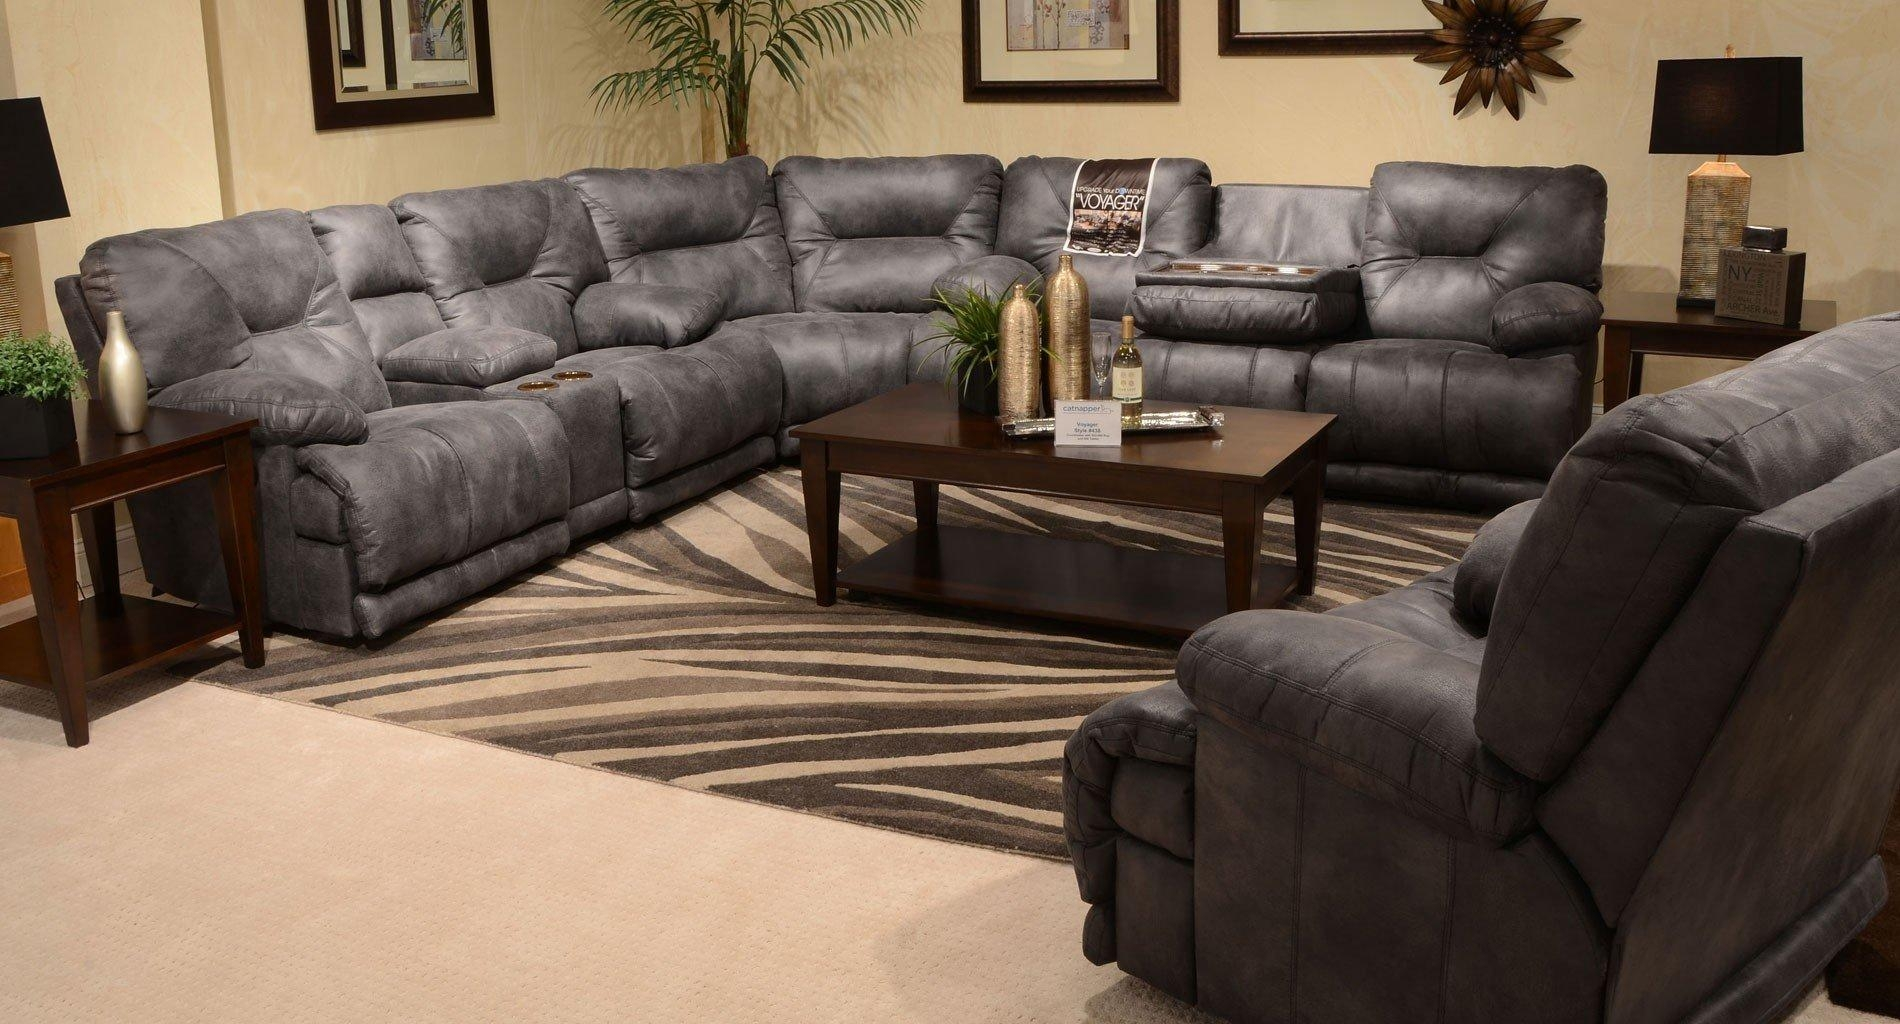 Voyager Reclining Sectional Set (Slate) Catnapper | Furniture Cart in Catnapper Reclining Sofas